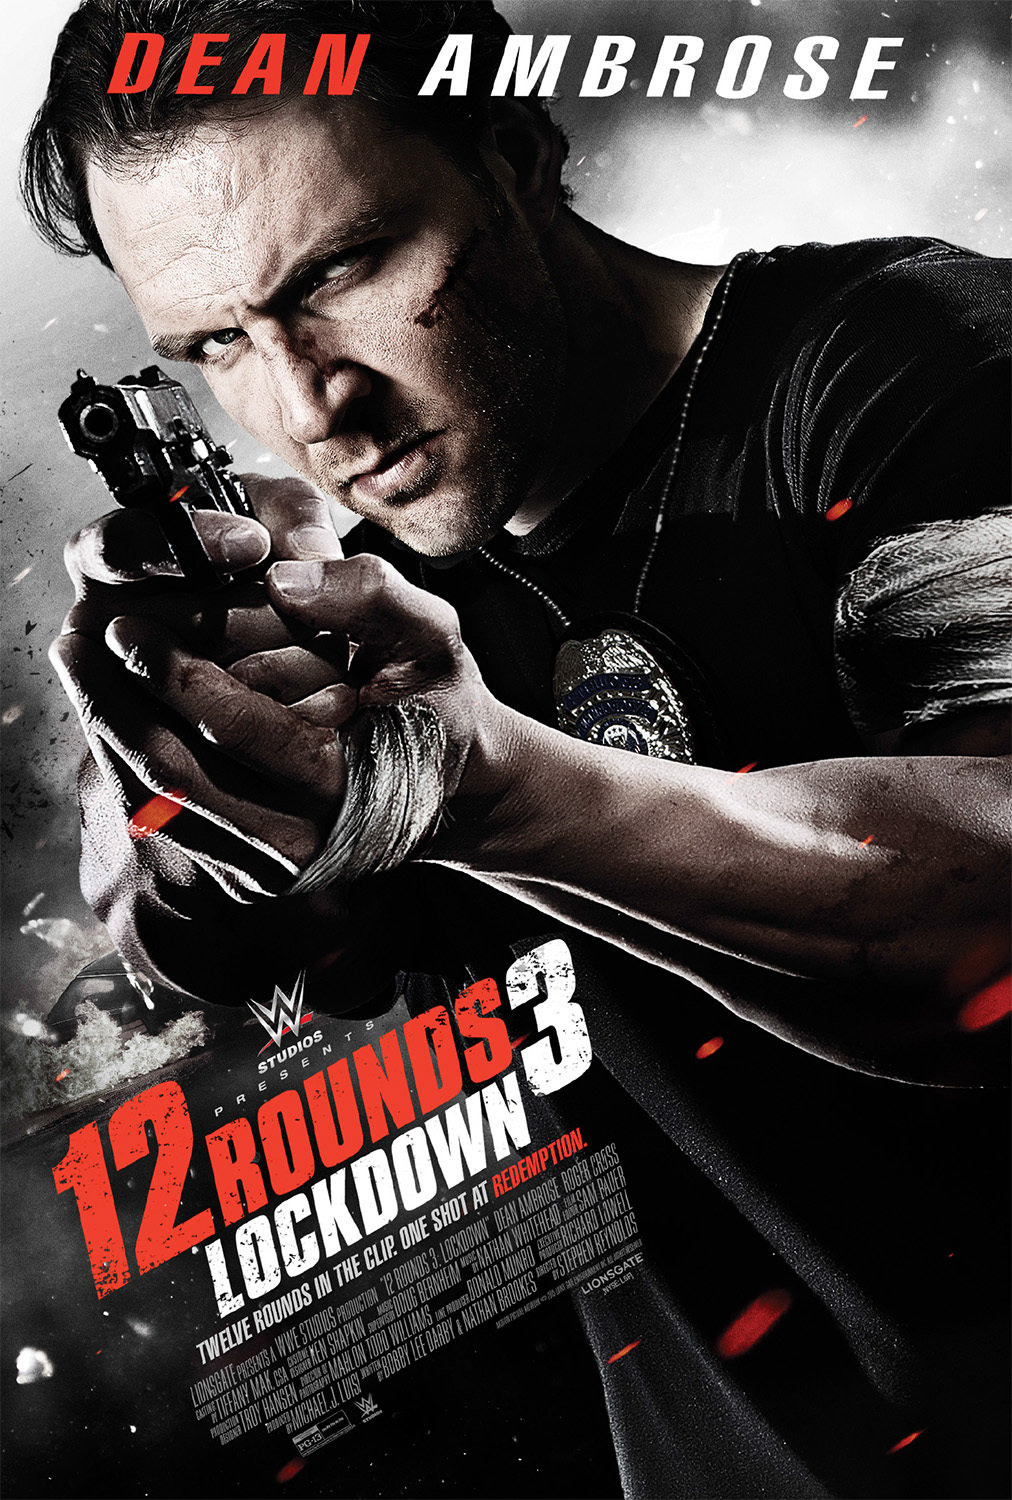 12 Rounds 3 Lockdown 2015 Imdb